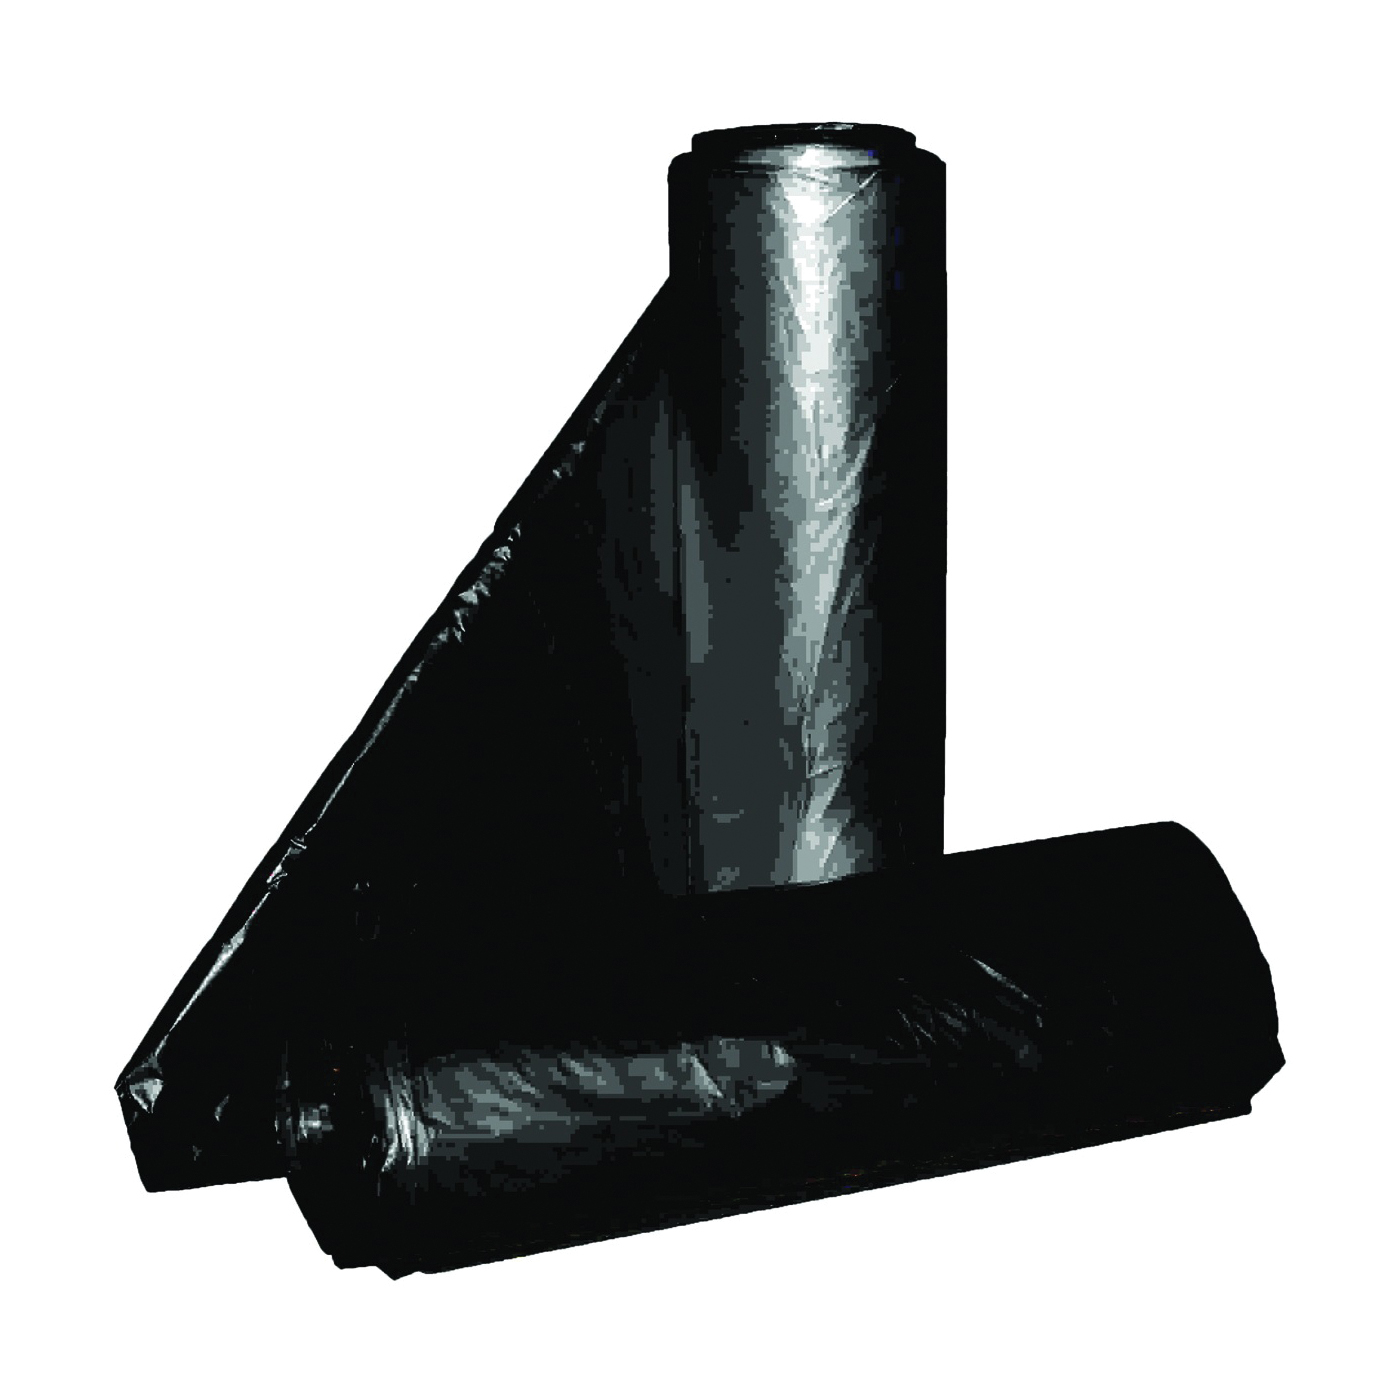 Picture of ALUF PLASTICS RL Series RL-3339H Can Liner, 33 gal Capacity, Repro Blend, Black